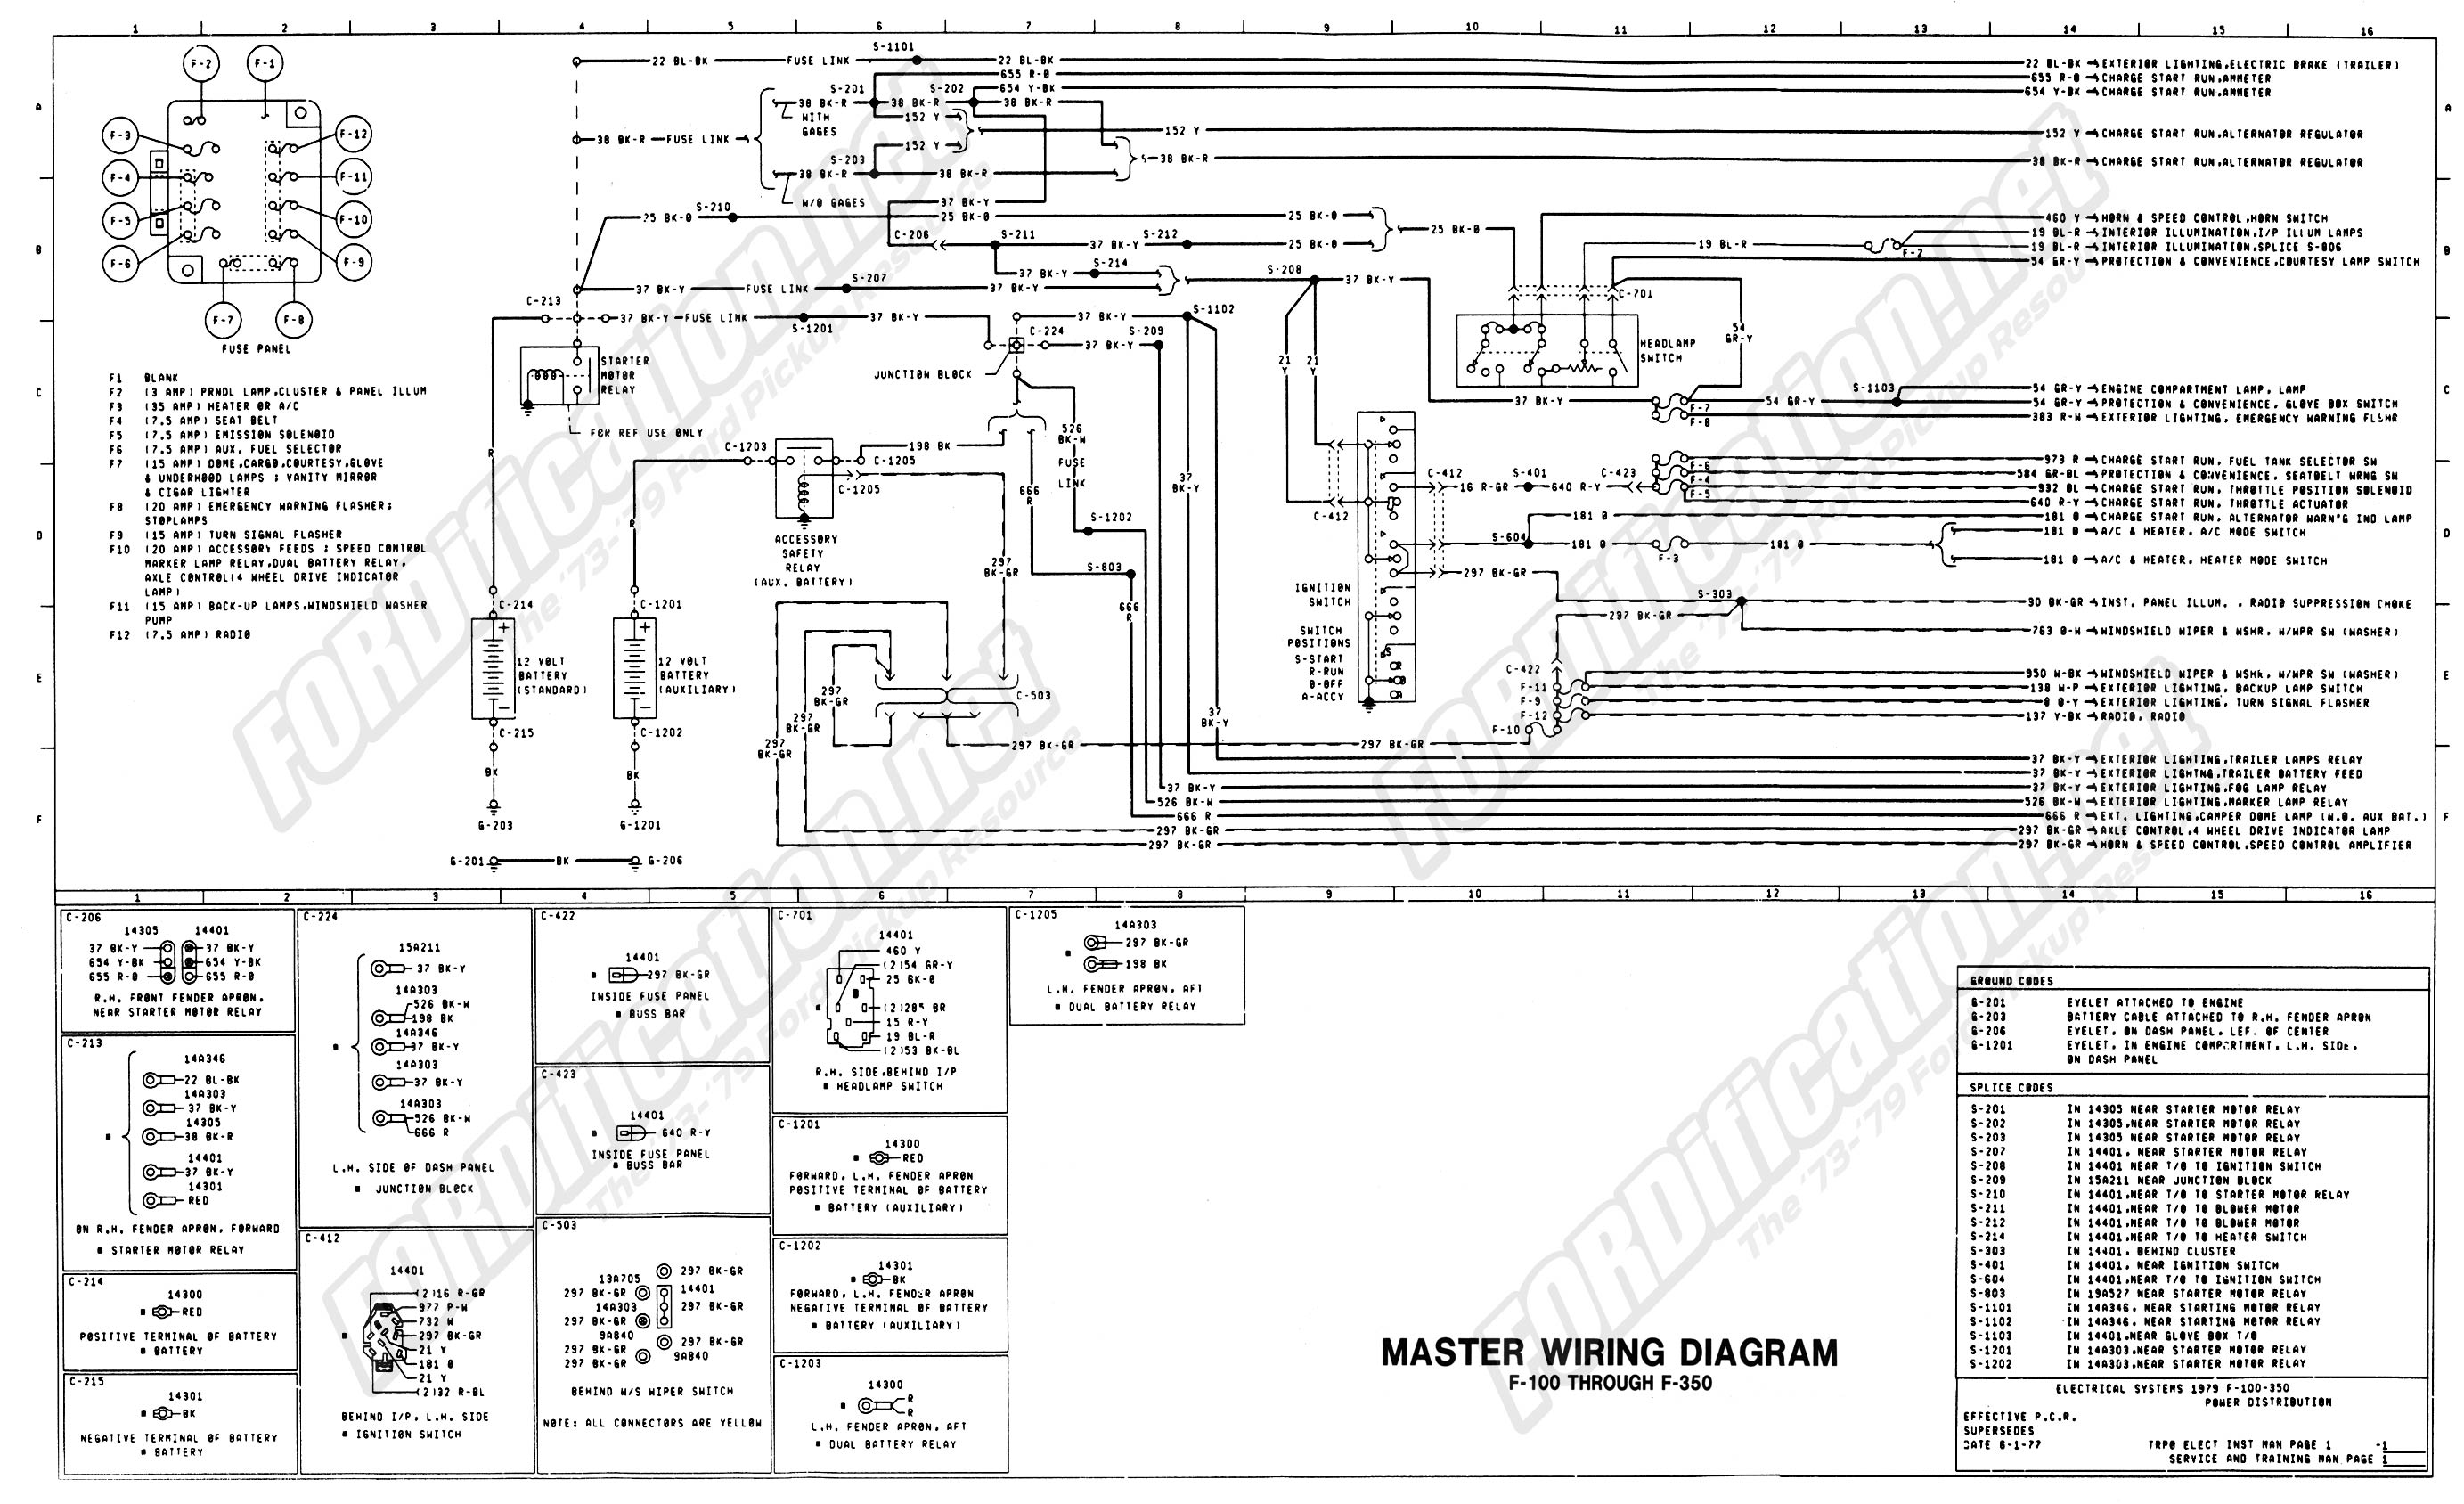 wiring_79master_1of9 1973 1979 ford truck wiring diagrams & schematics fordification net wiring diagram for truck to trailer at n-0.co